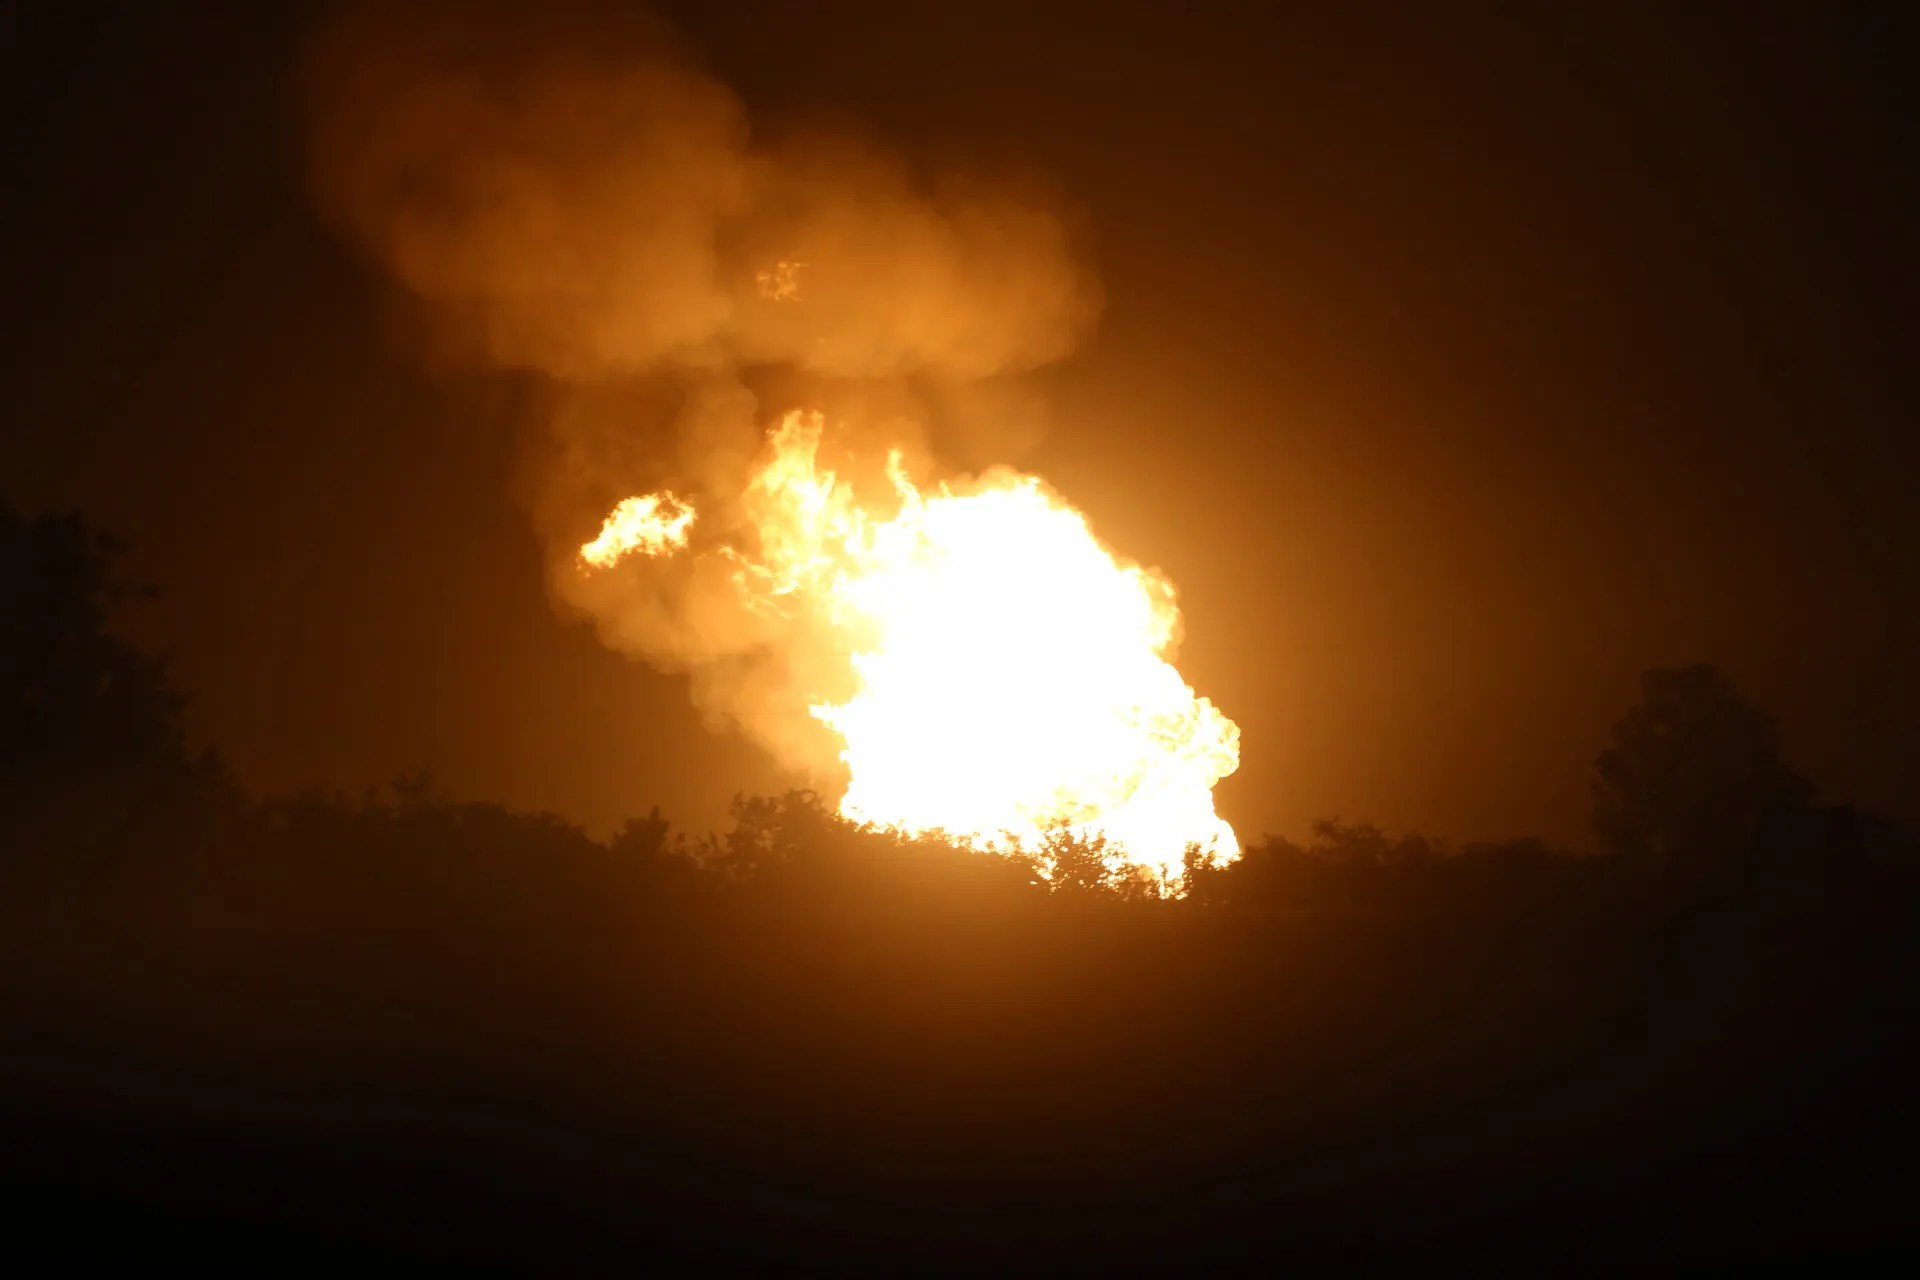 Fire after a pipeline explosion in rural DeWitt County, Texas, illuminates the horizon Sunday, June 14, 2015. Authorities said no one was injured after a natural gas pipeline rupture sparked a massive fire that prompted home evacuations in South Texas. (Richard Hoang/The Victoria Advocate via AP)